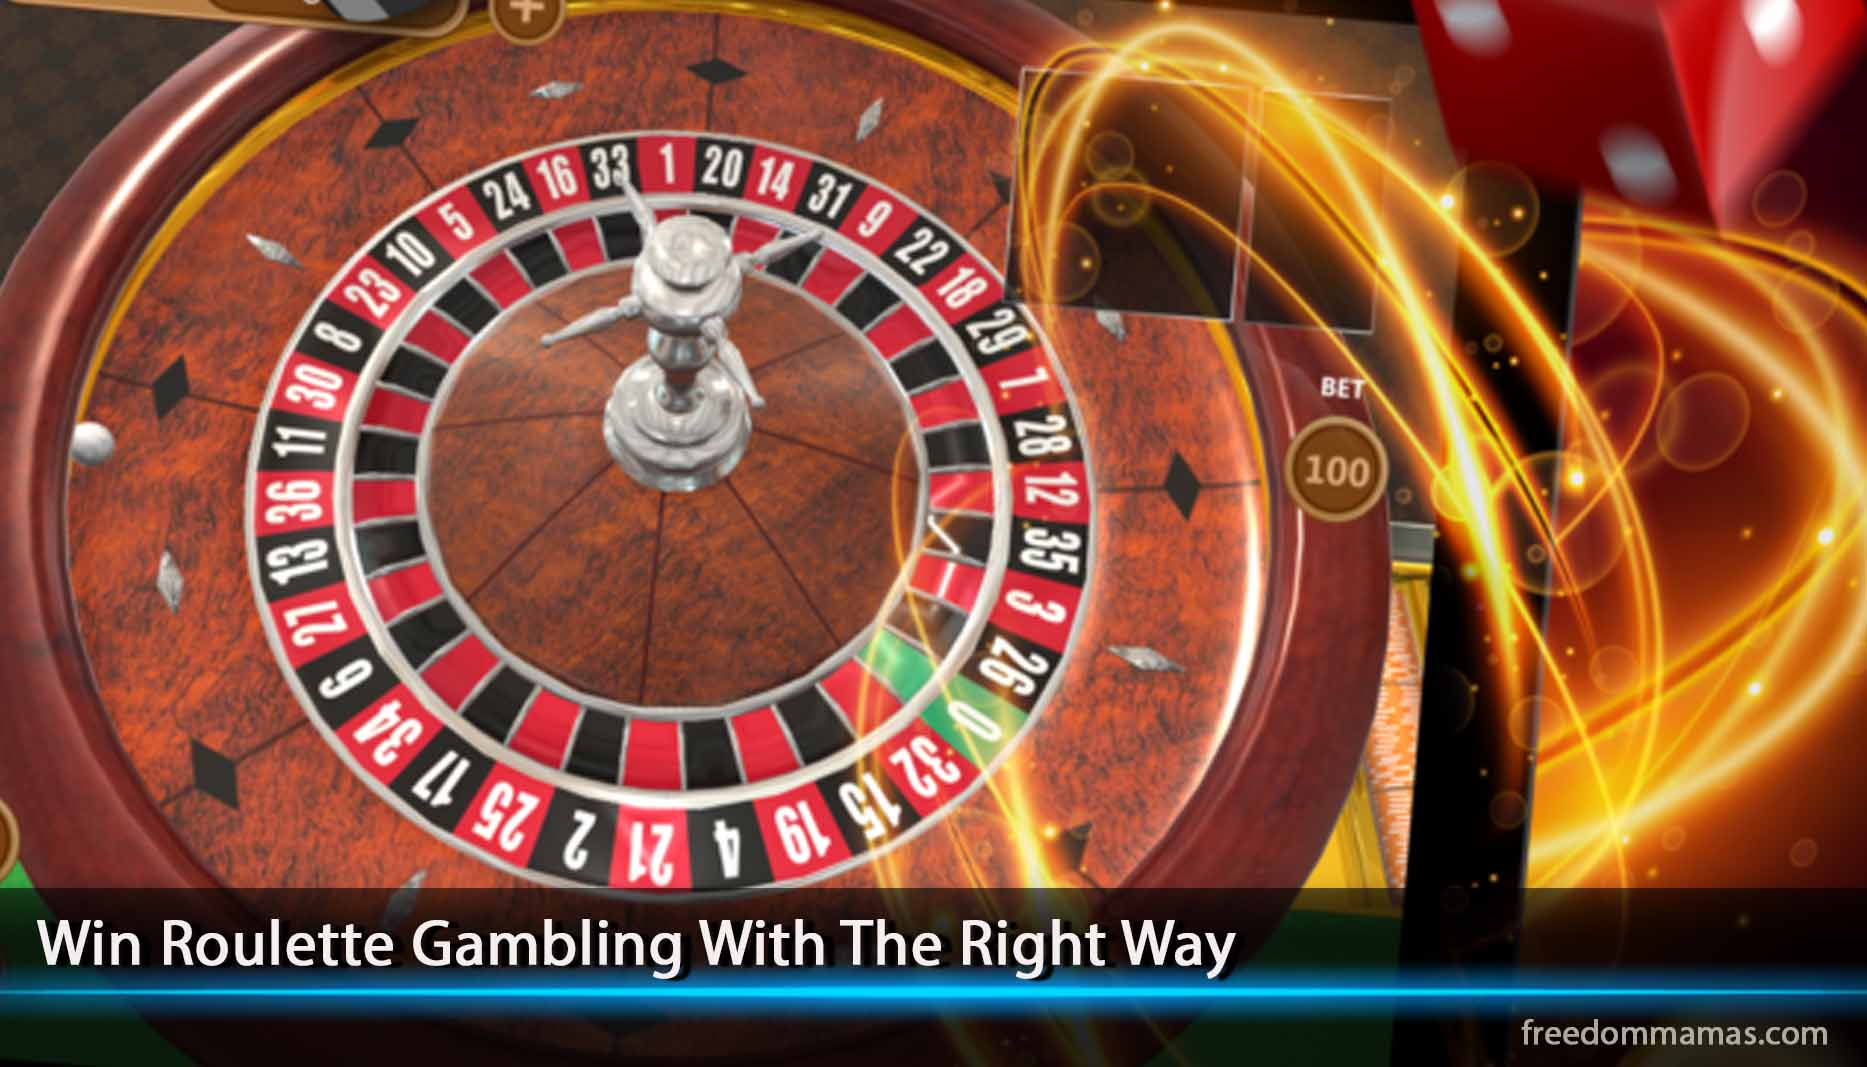 Win Roulette Gambling With The Right Way